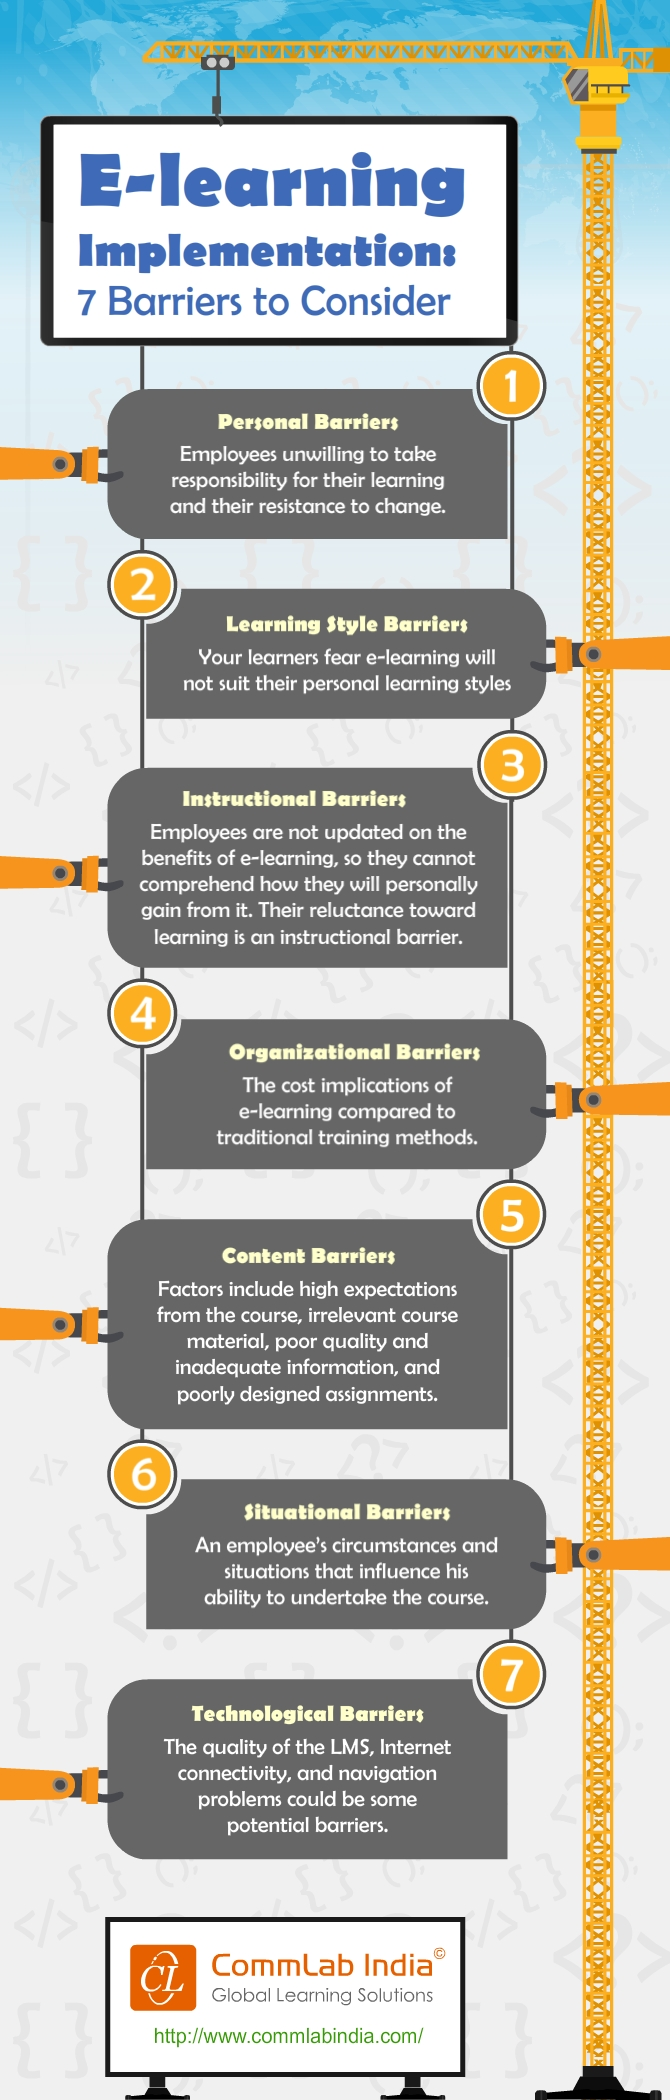 7 Barriers for E-learning Implementation [Infographic]